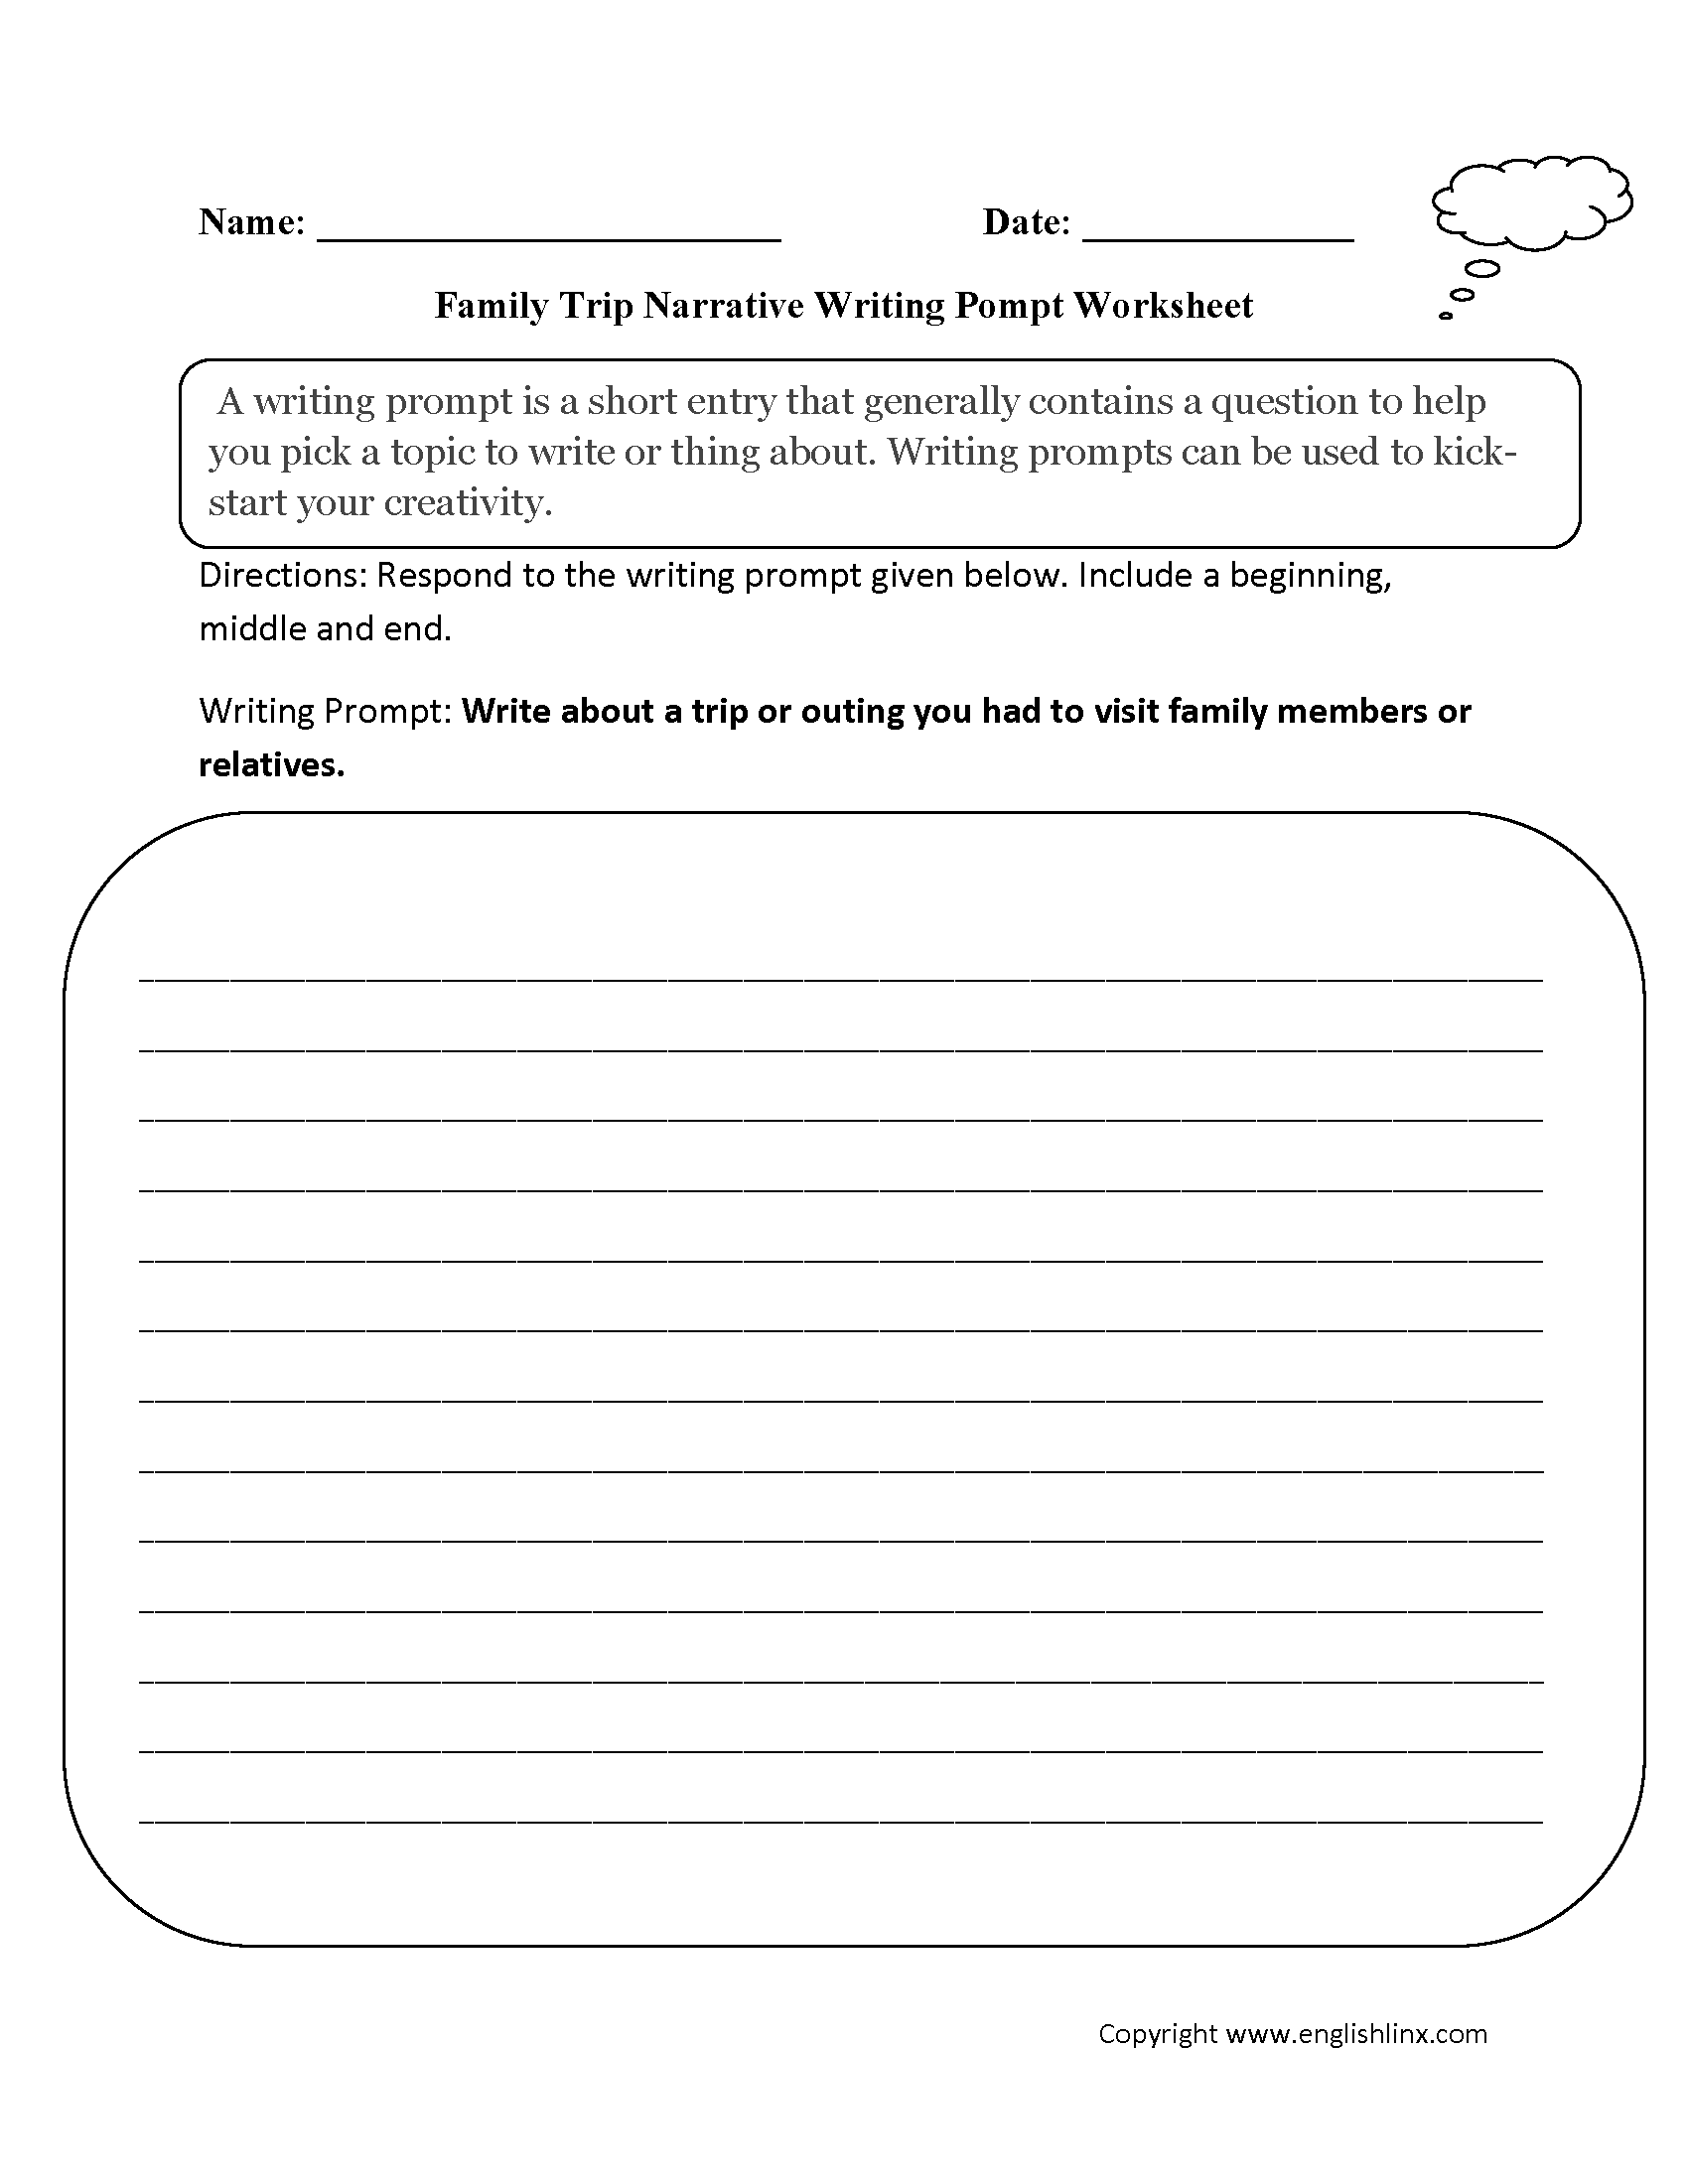 Writing Prompt Worksheets Would Be Good For Warm Ups At The Beginning Of The Period